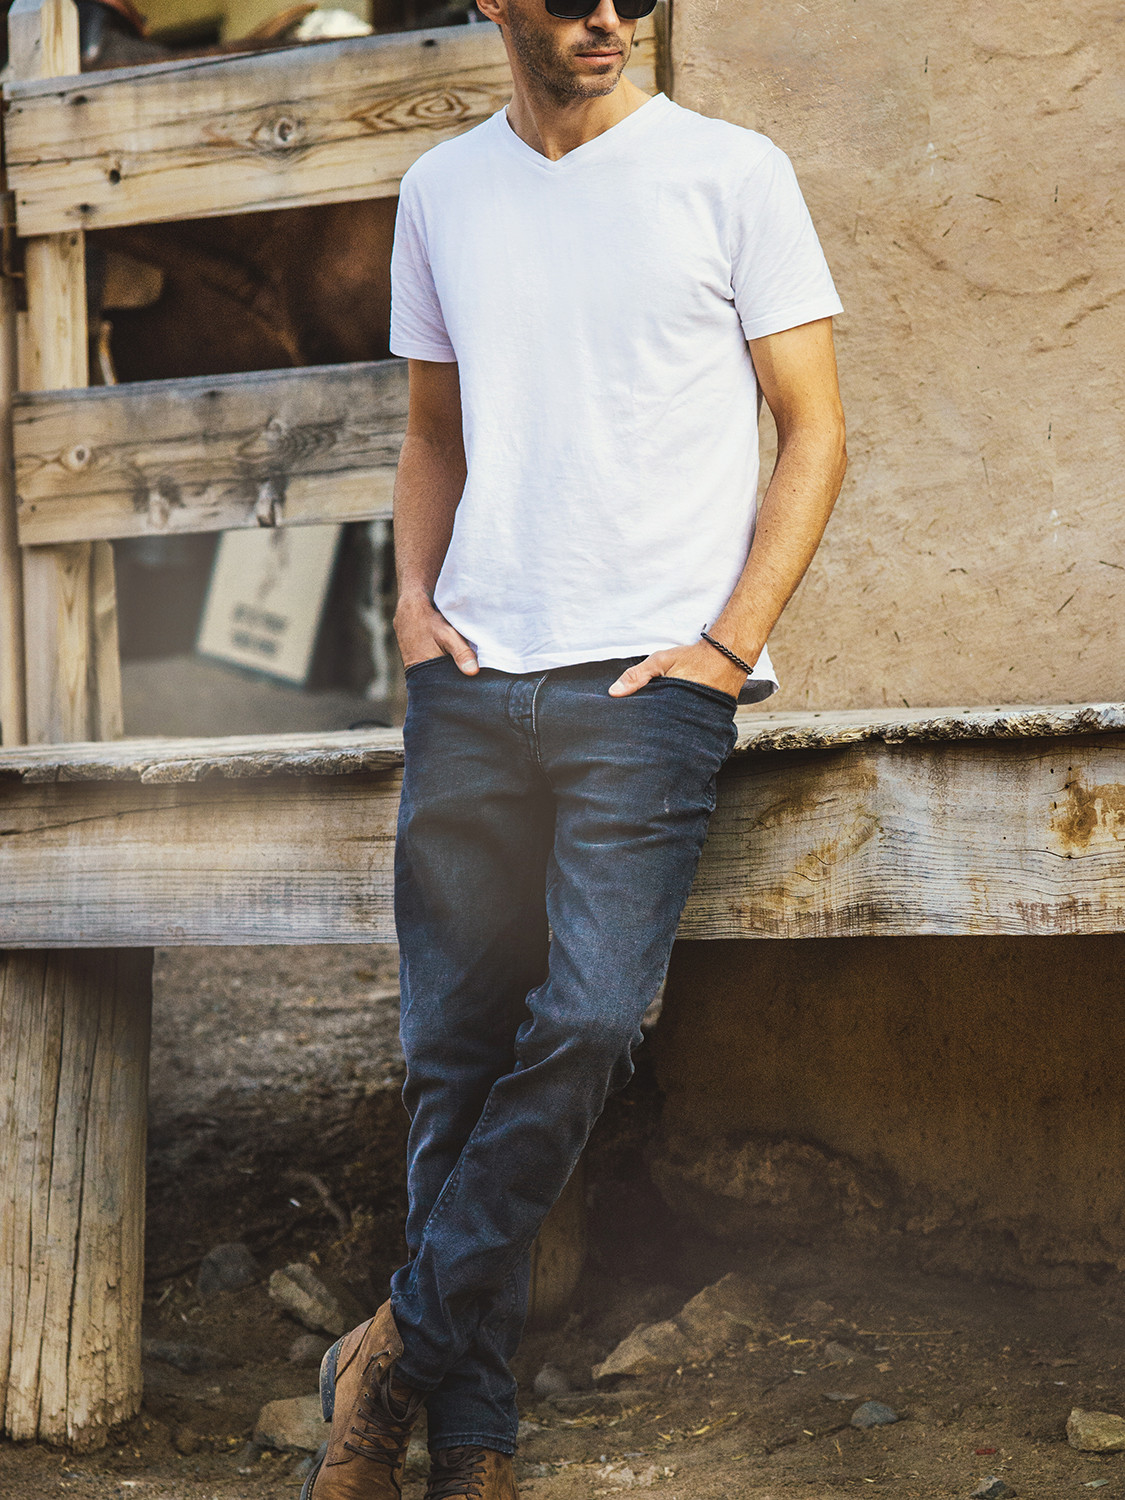 Men's outfit idea for 2021 with white v-neck t-shirt, black jeans. Suitable for spring and summer.